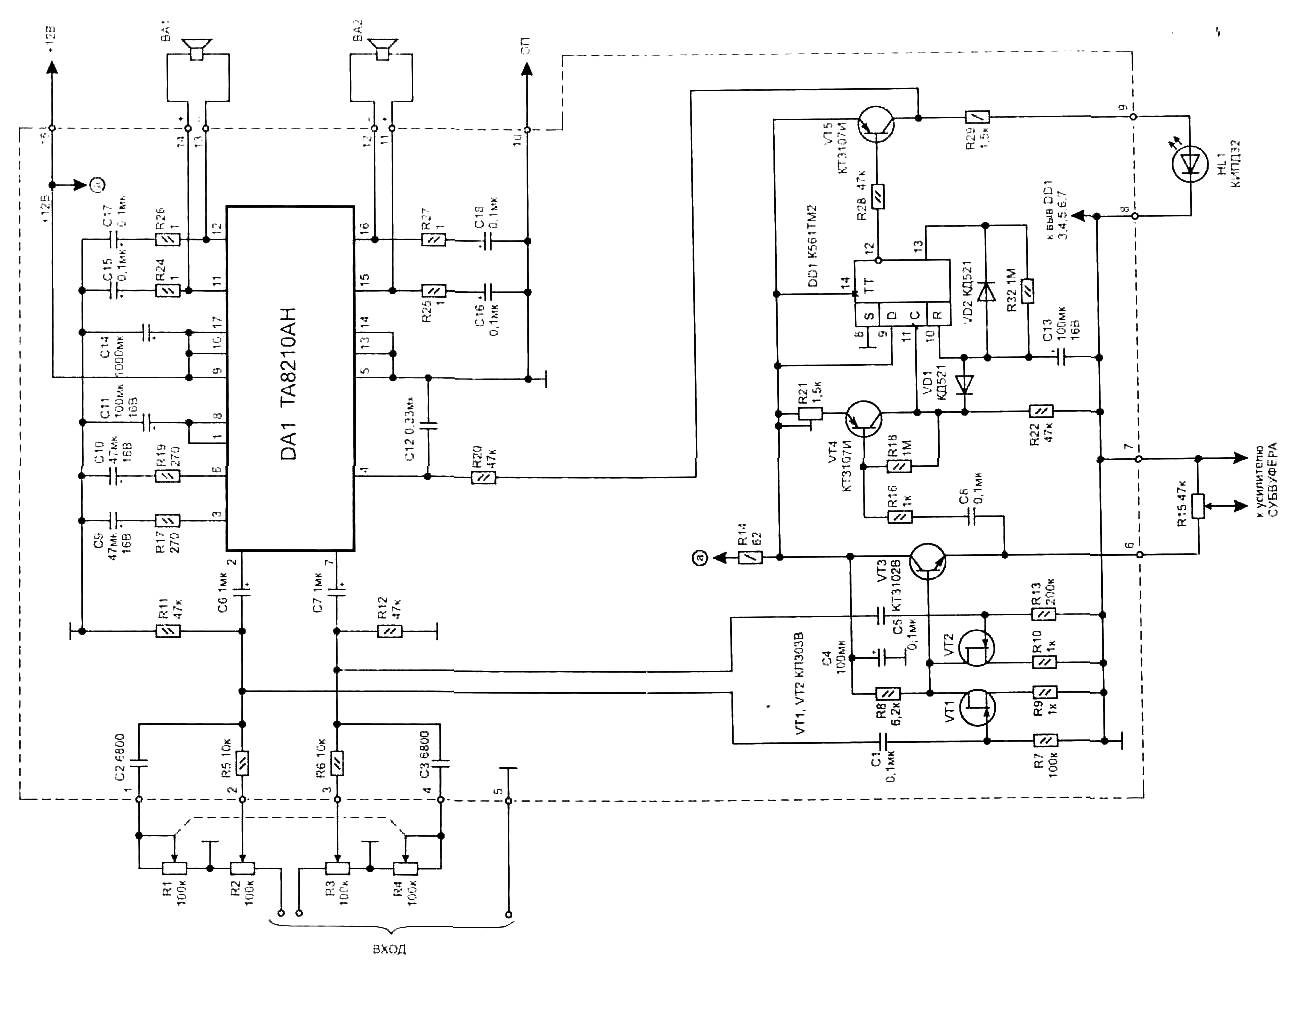 120 Vac Switch Wiring Diagram, 120, Free Engine Image For